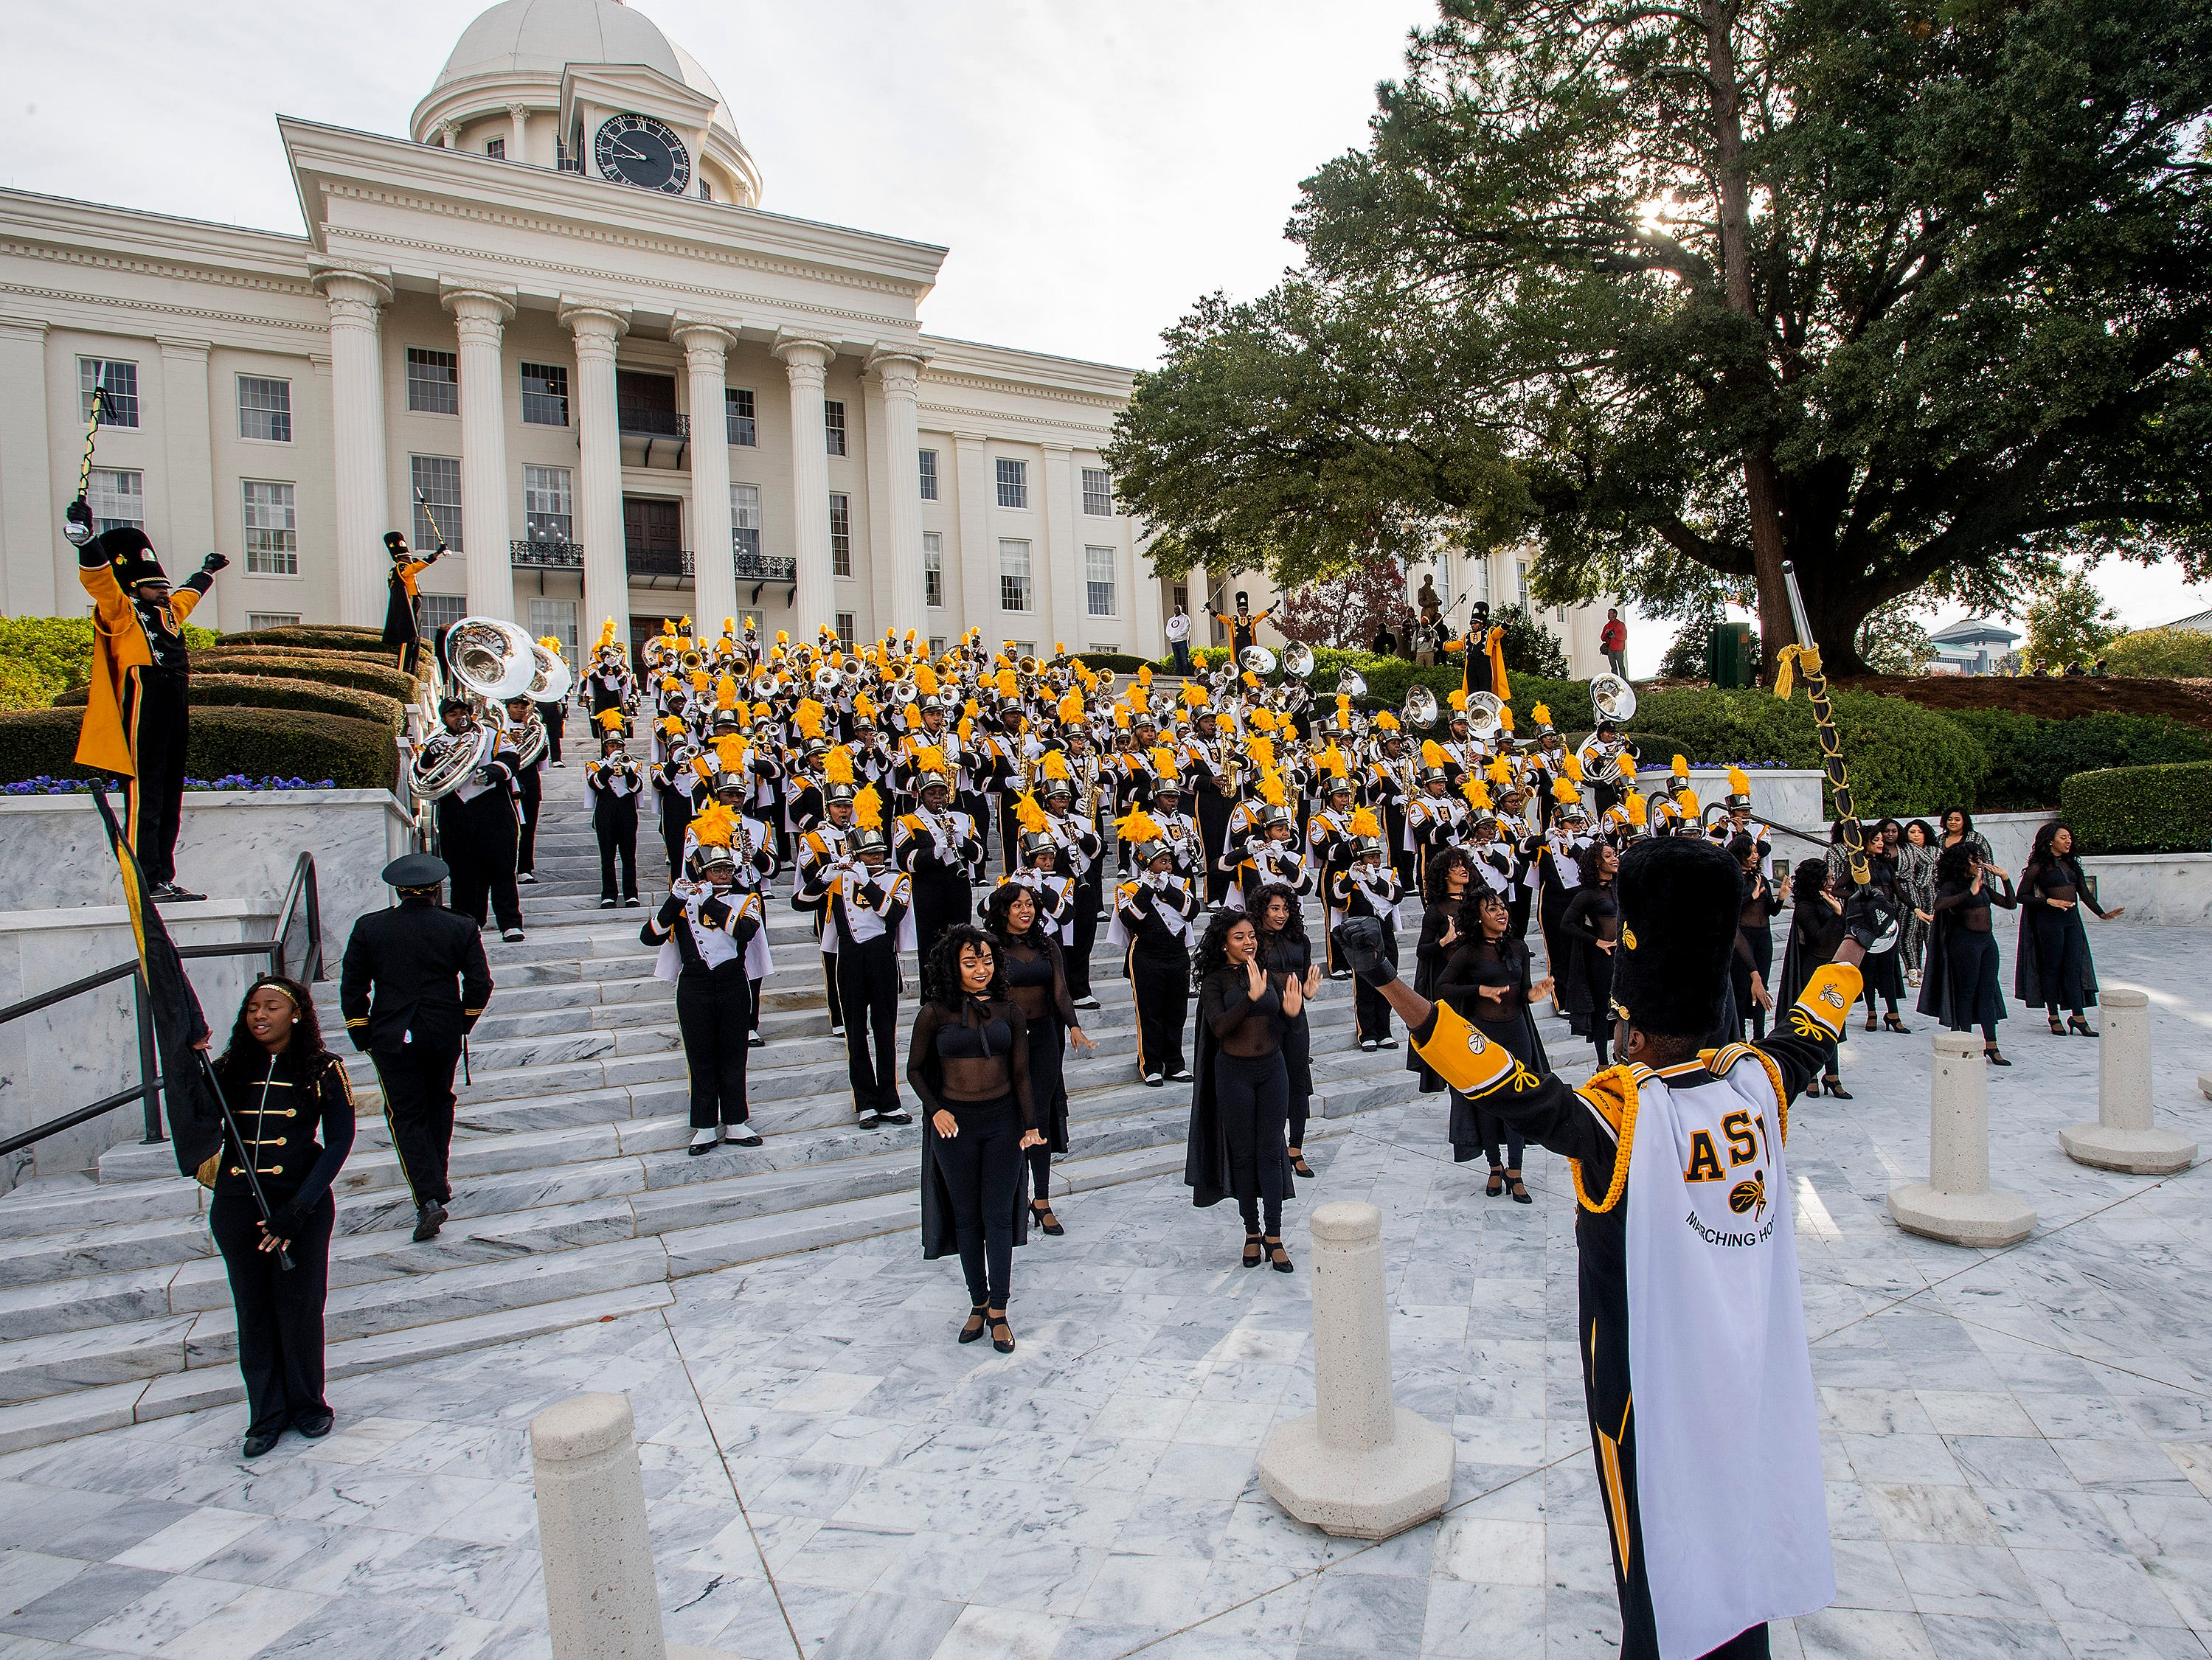 The Alabama State University Marching Hornets perform on the state capitol steps before the Turkey Day Classic Parade in downtown Montgomery, Ala., on Thanksgiving Day, Thursday November 22, 2018.